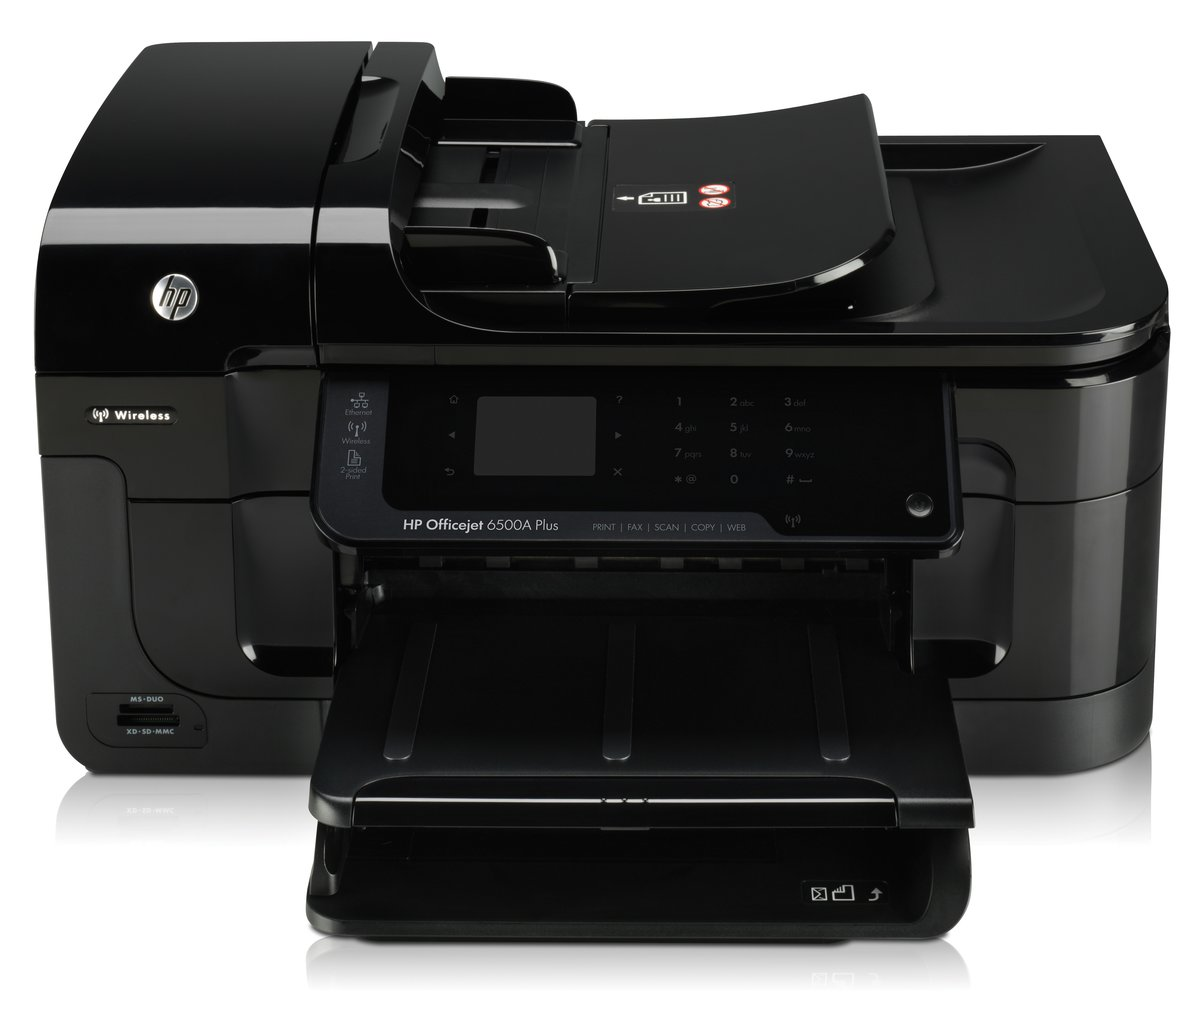 hp officejet 6500a plus eprint all in one printer copier scanner fax rh officedepot com hp officejet 6500a plus service manual hp officejet 6500a plus notice